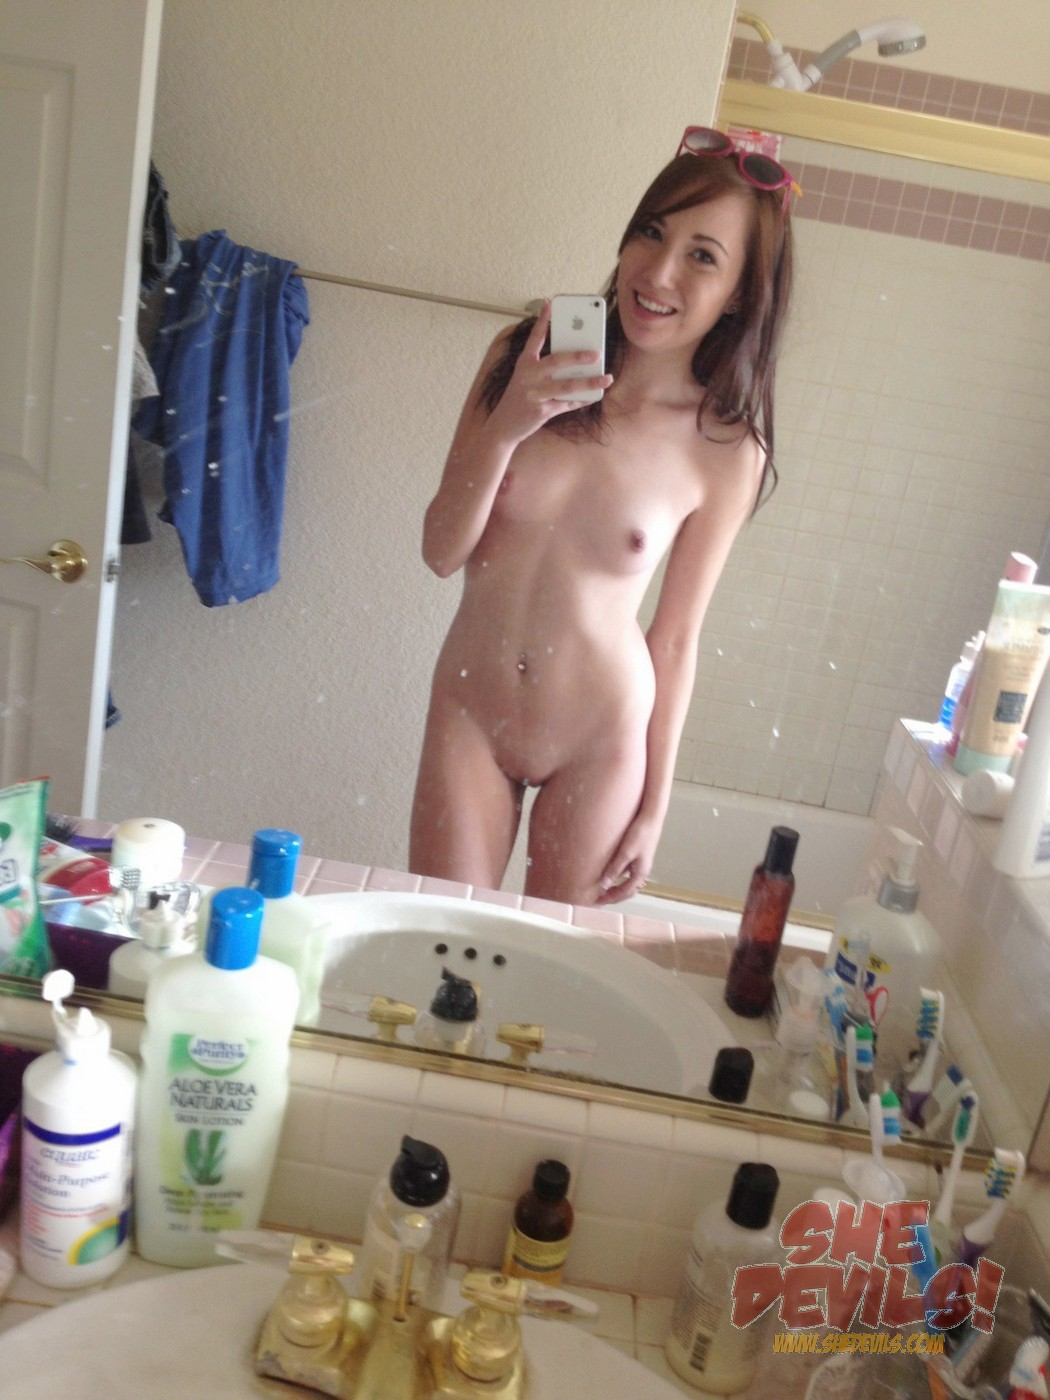 Nude teen sexting pictures